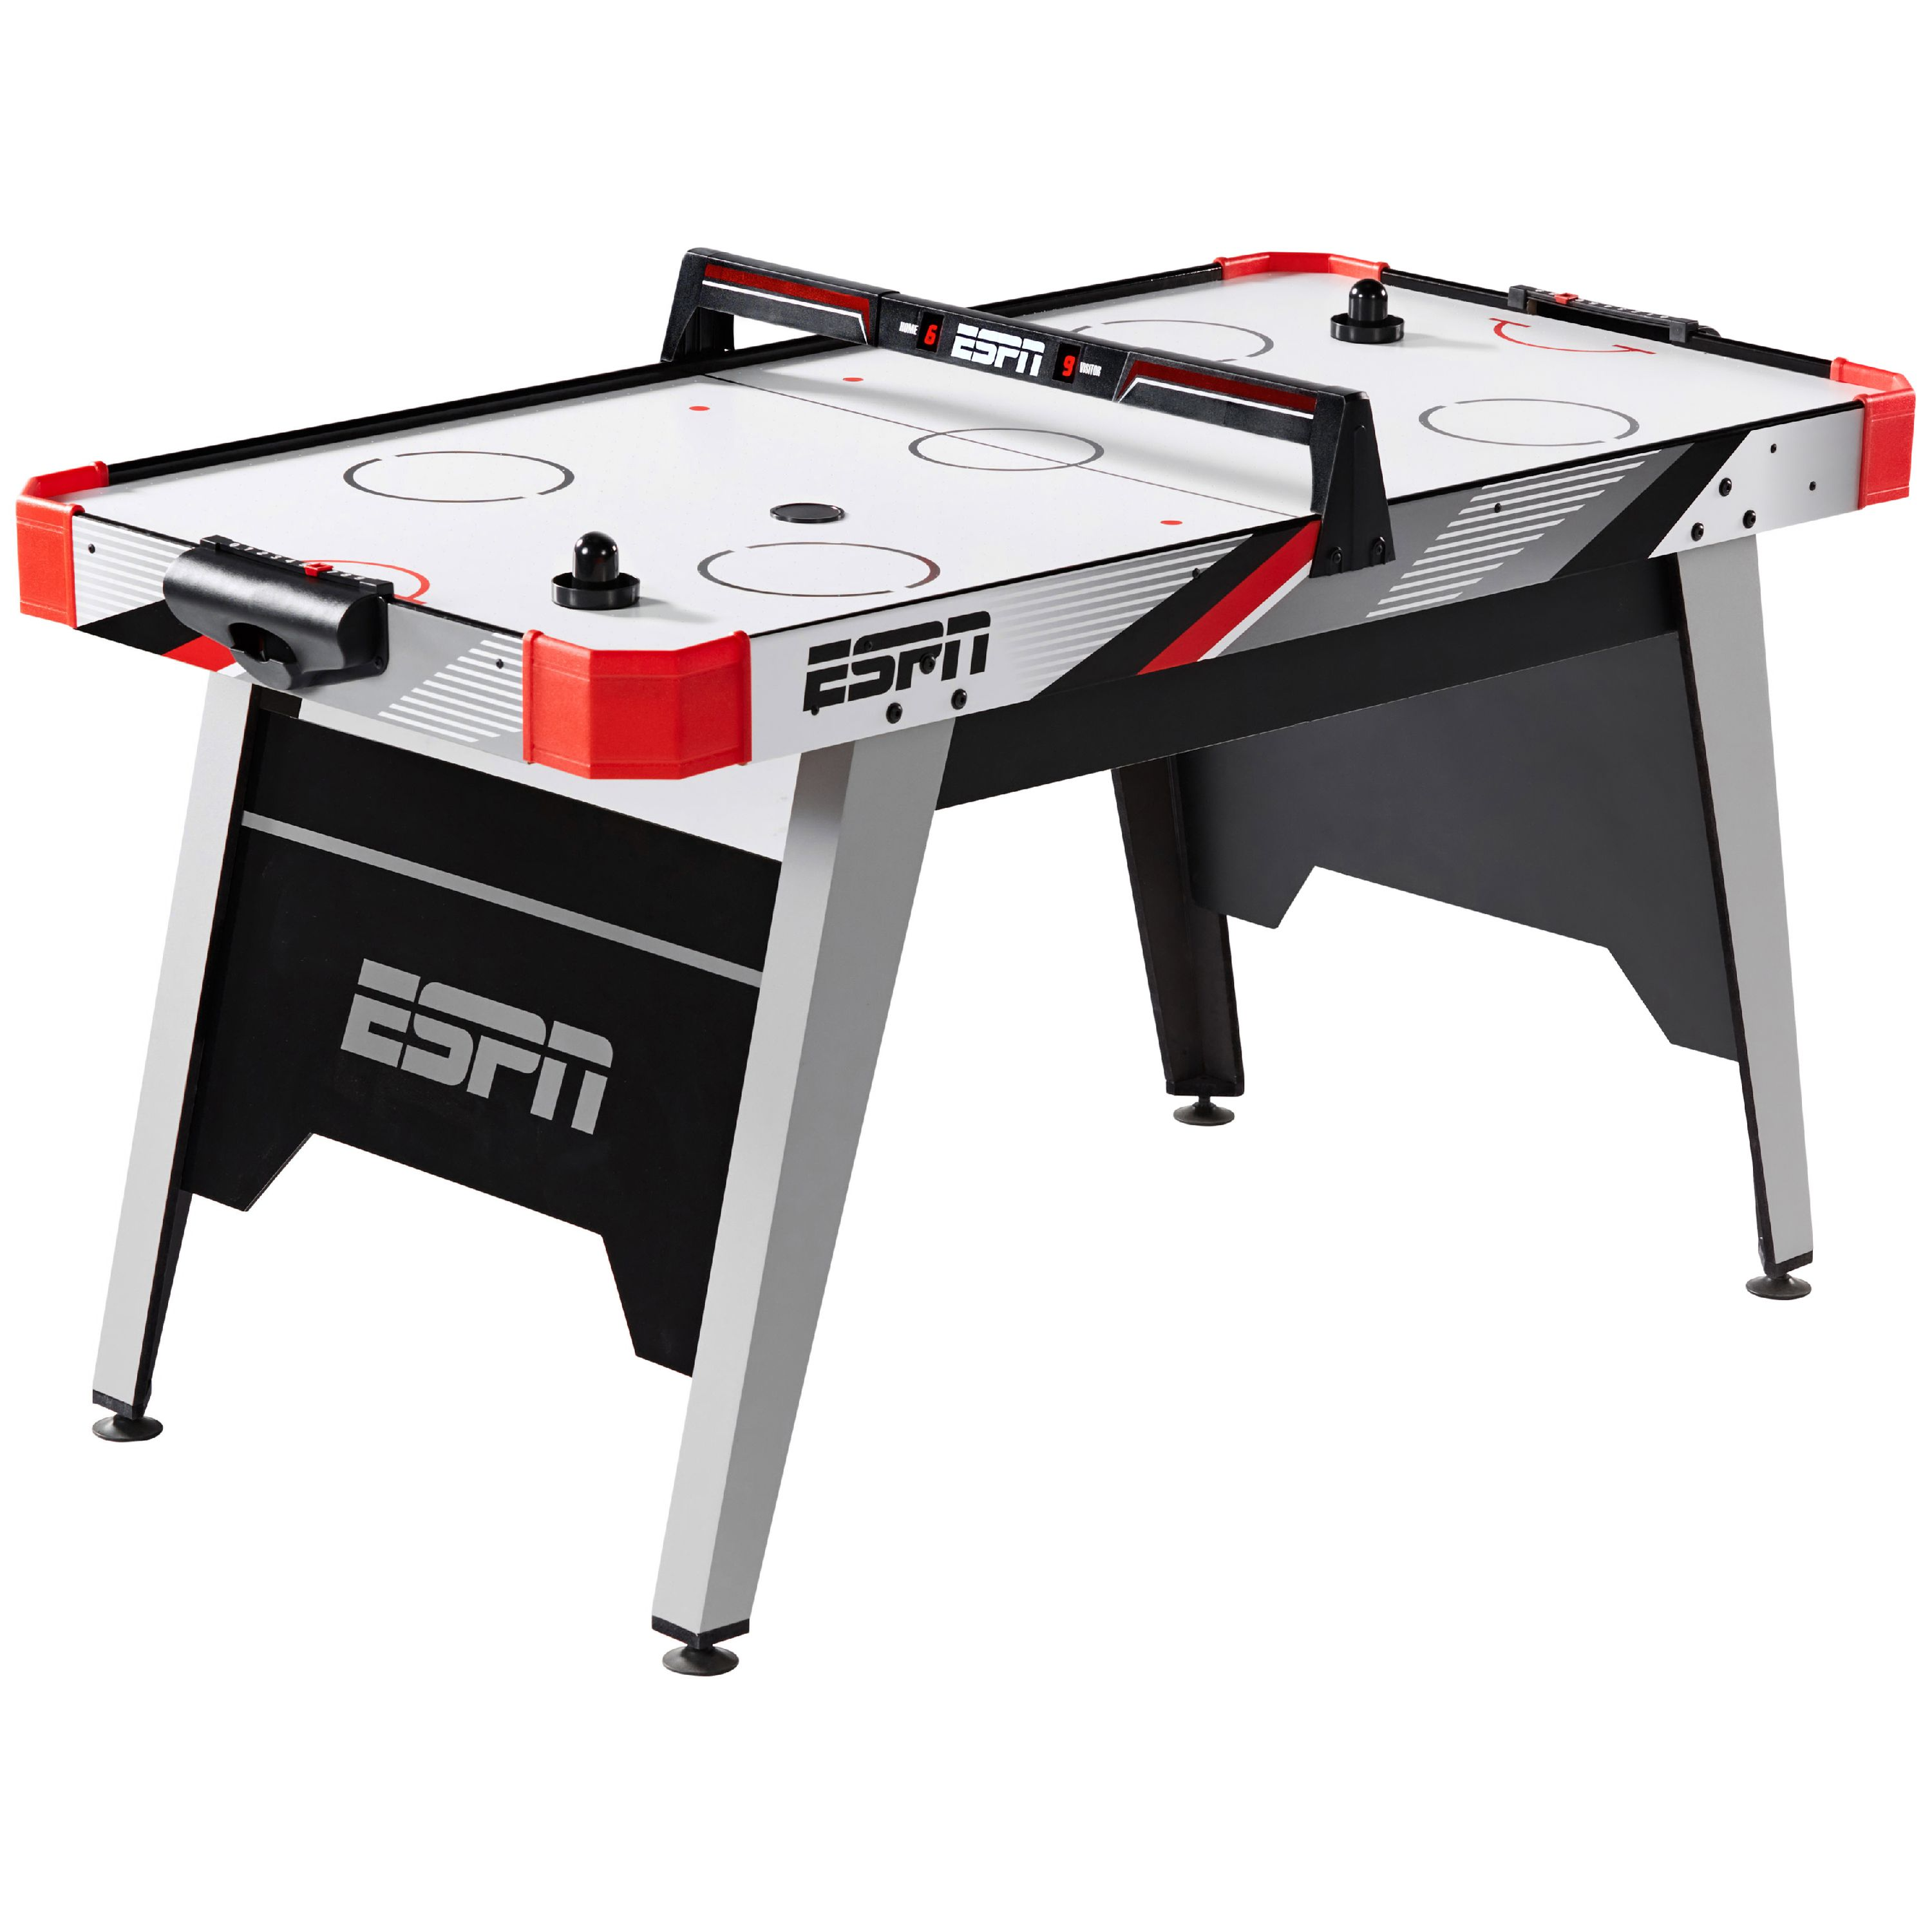 Espn 60 Air Hockey Game Table Led Overhead Electronic Scorer Quick Assembly Red Black Walmart Com Walmart Com